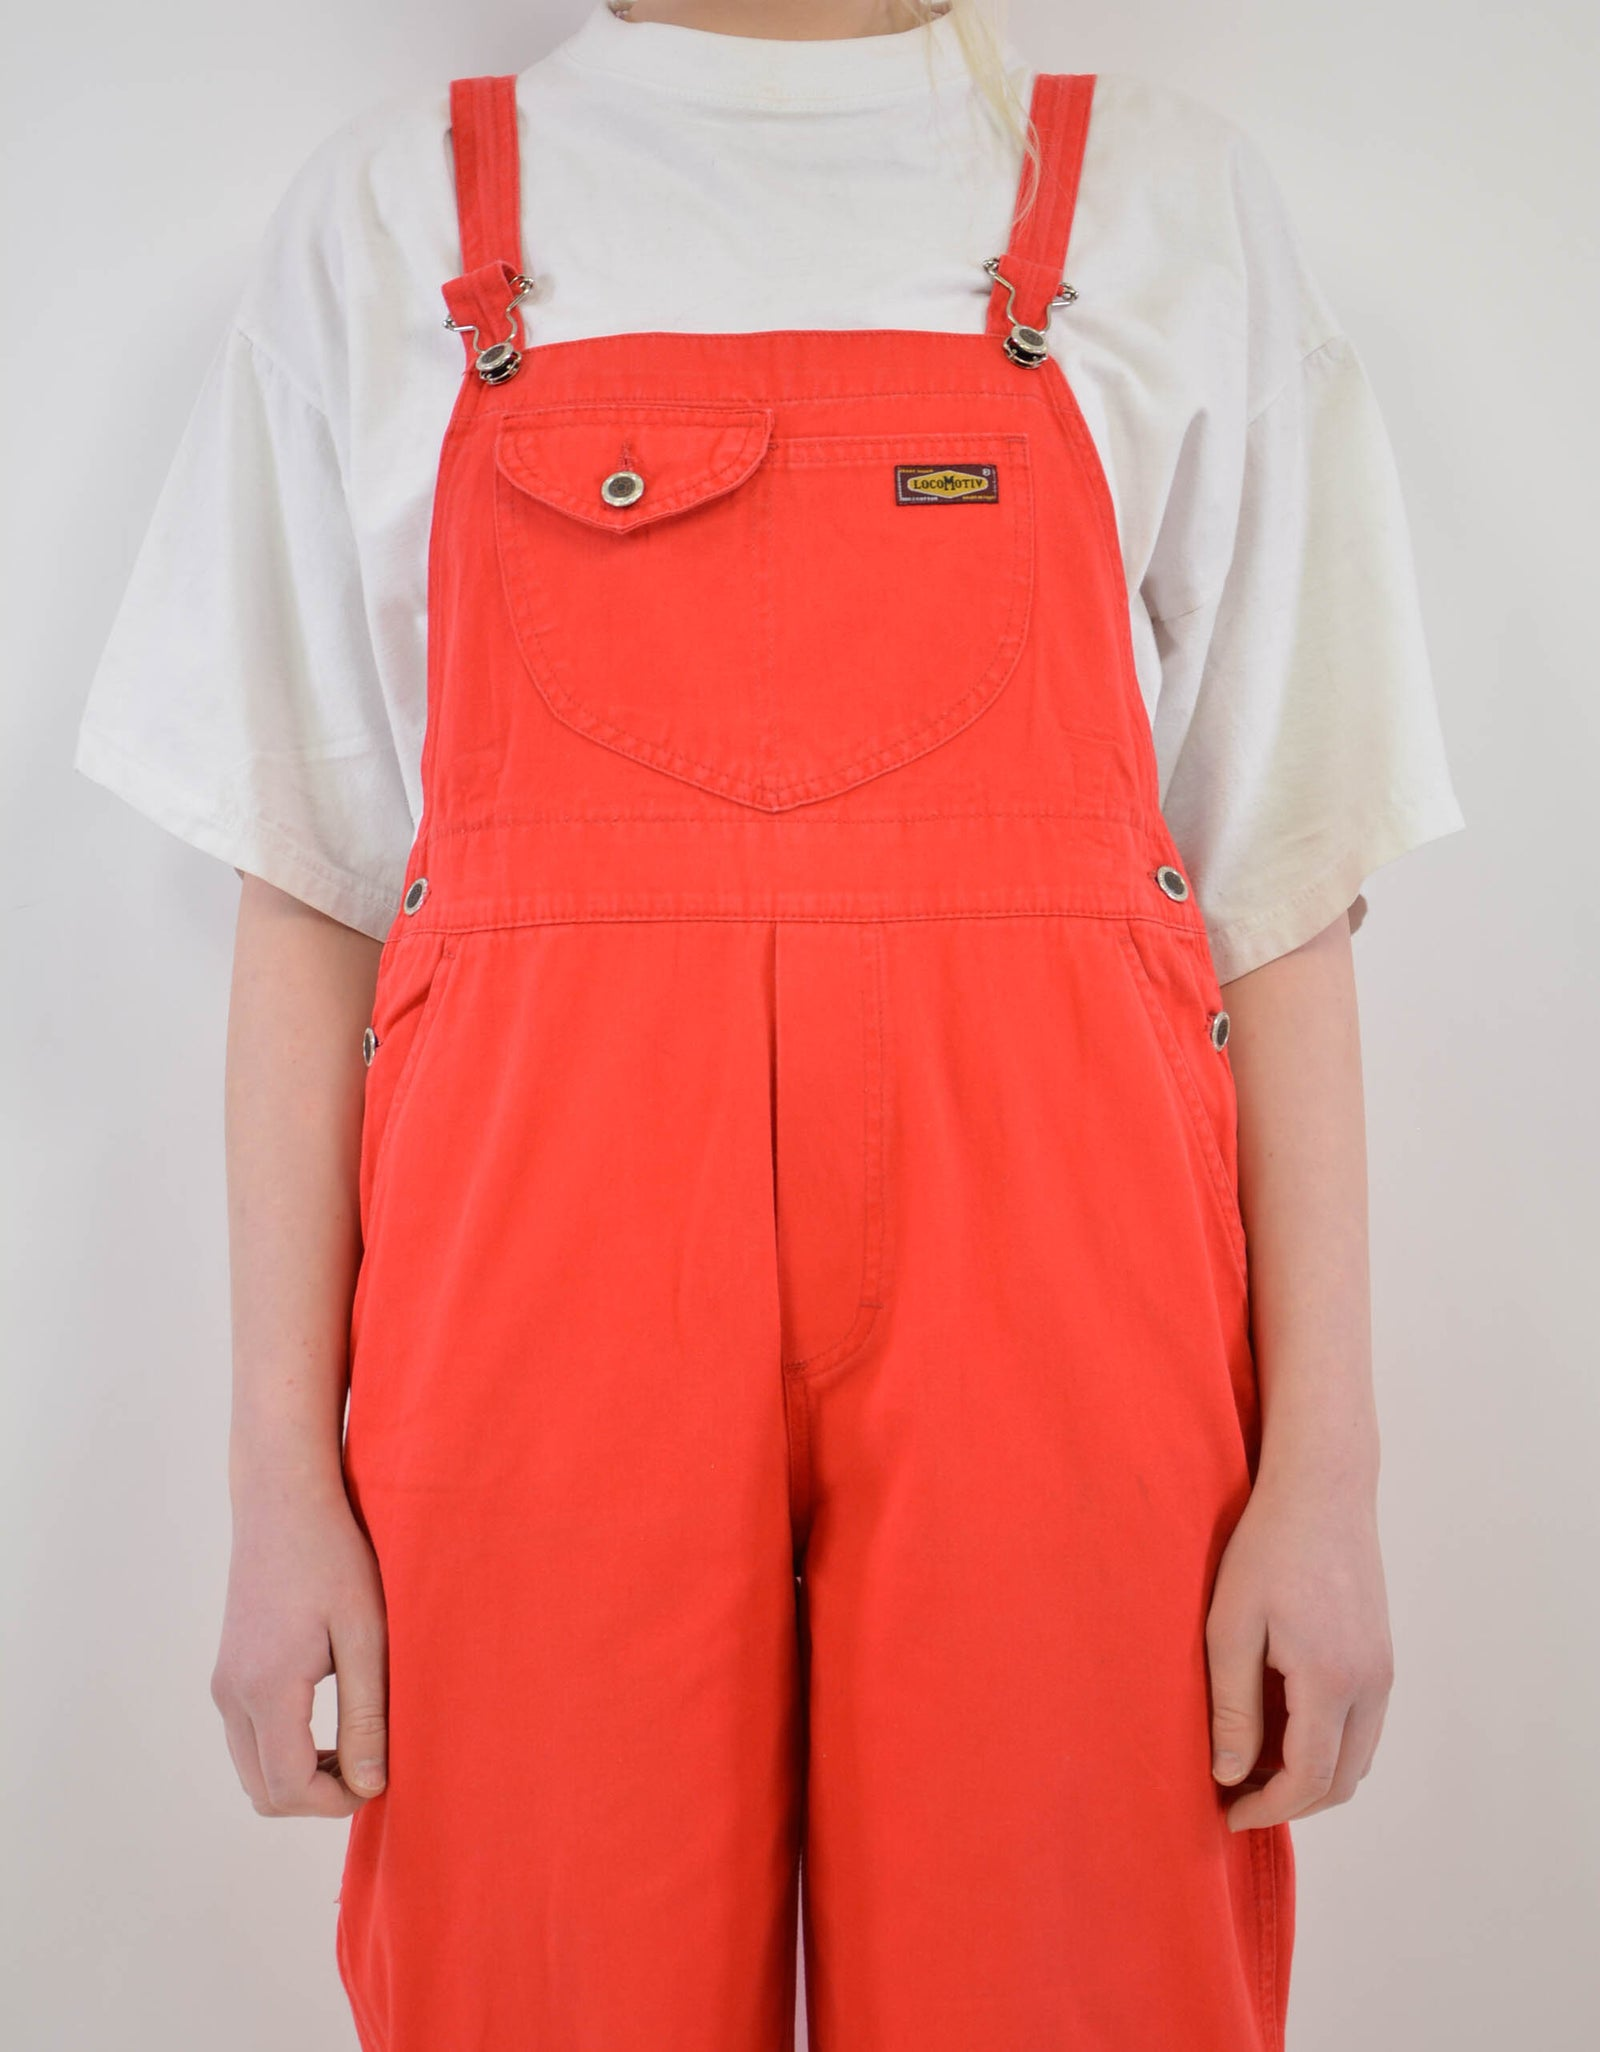 Red dungaree - PICKNWEIGHT - VINTAGE KILO STORE